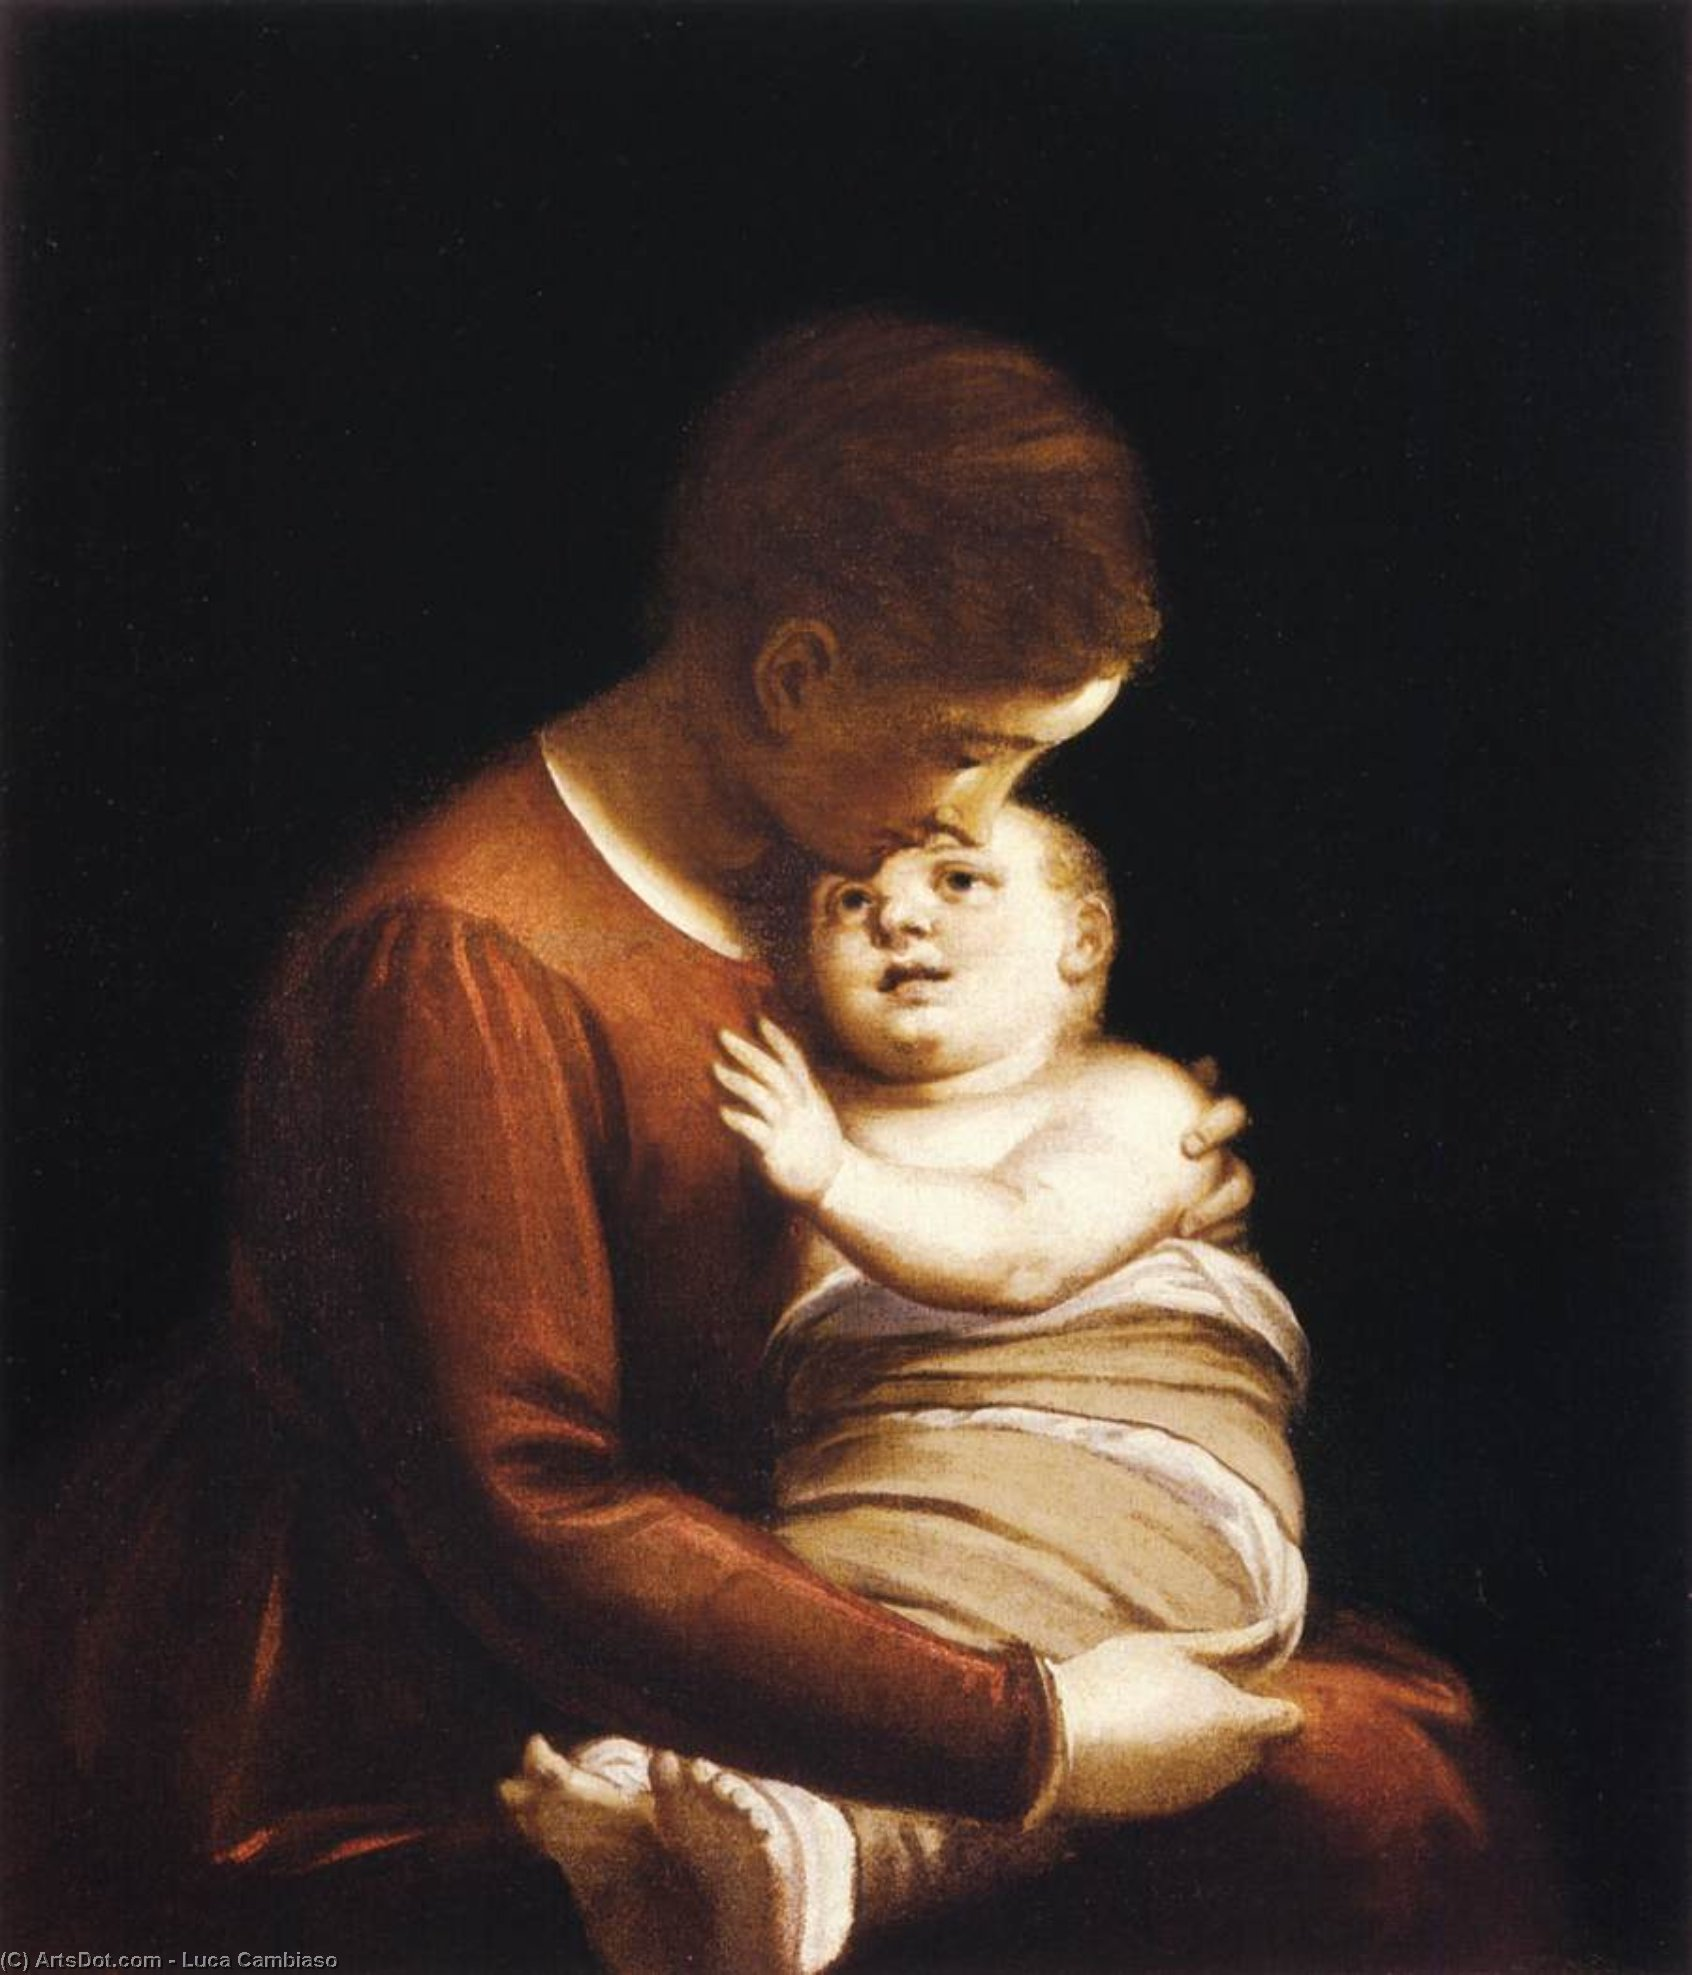 Wikioo.org - The Encyclopedia of Fine Arts - Painting, Artwork by Luca Cambiaso - Virgin with the Christ Child in Swaddling Clothes